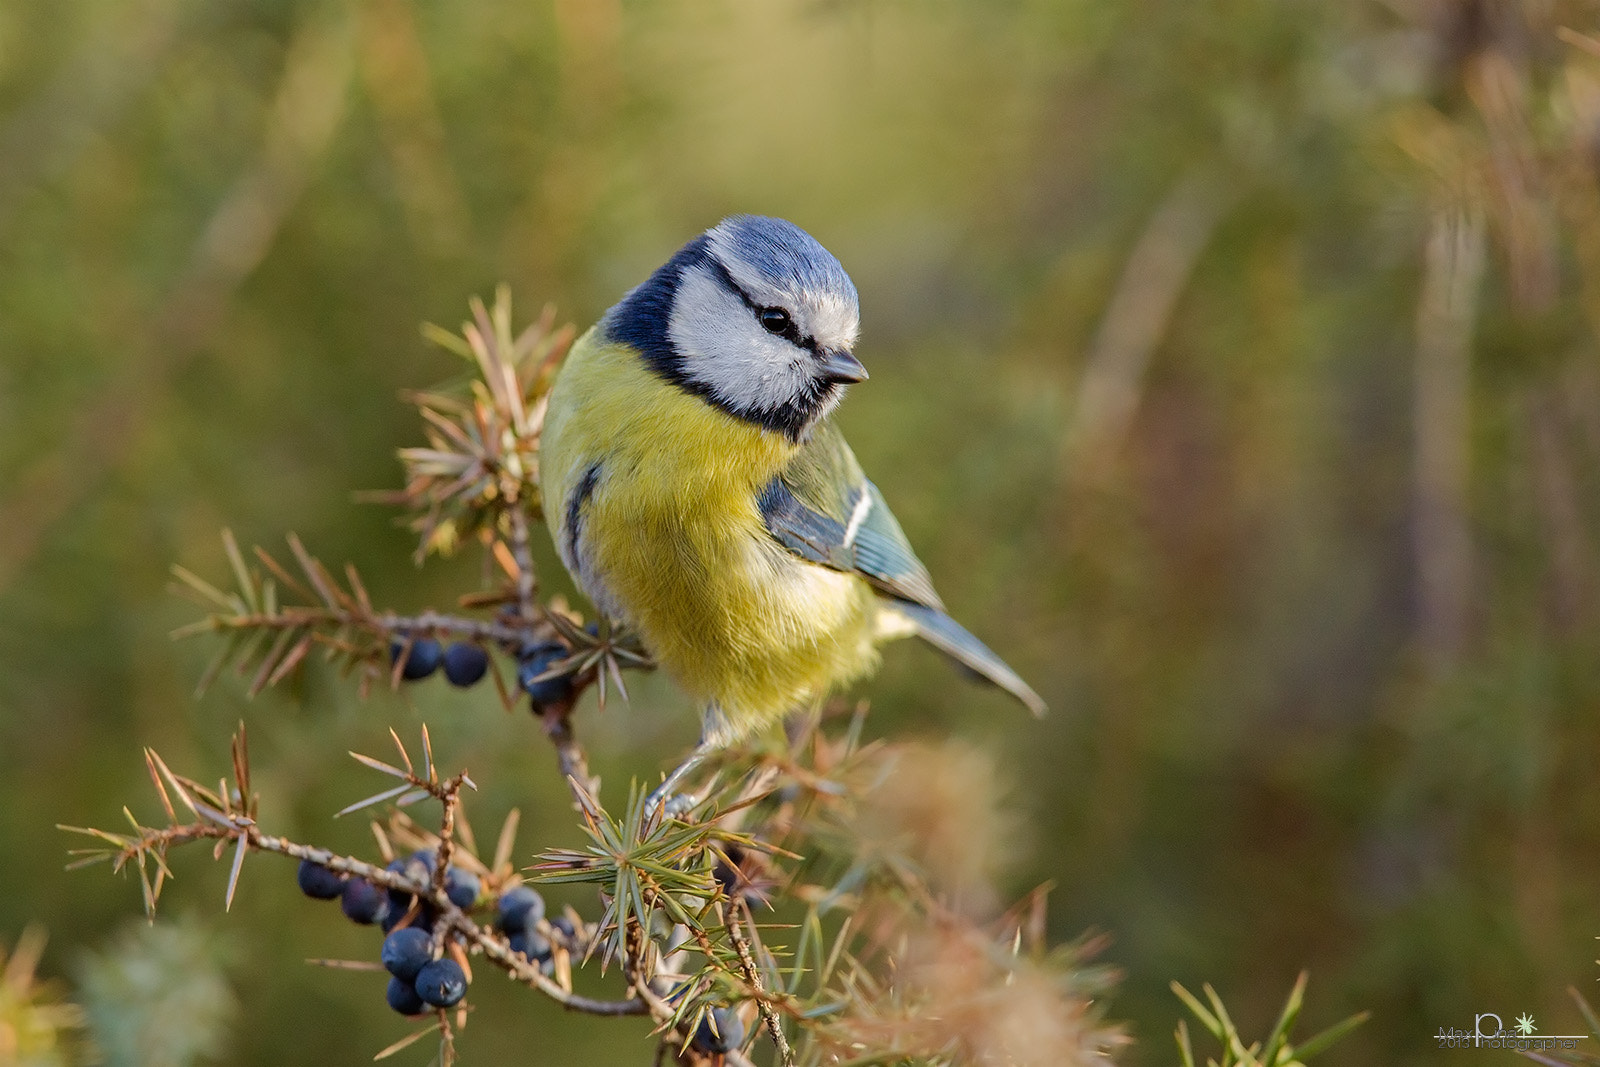 Photograph Blue tit by Massimo Dadone on 500px